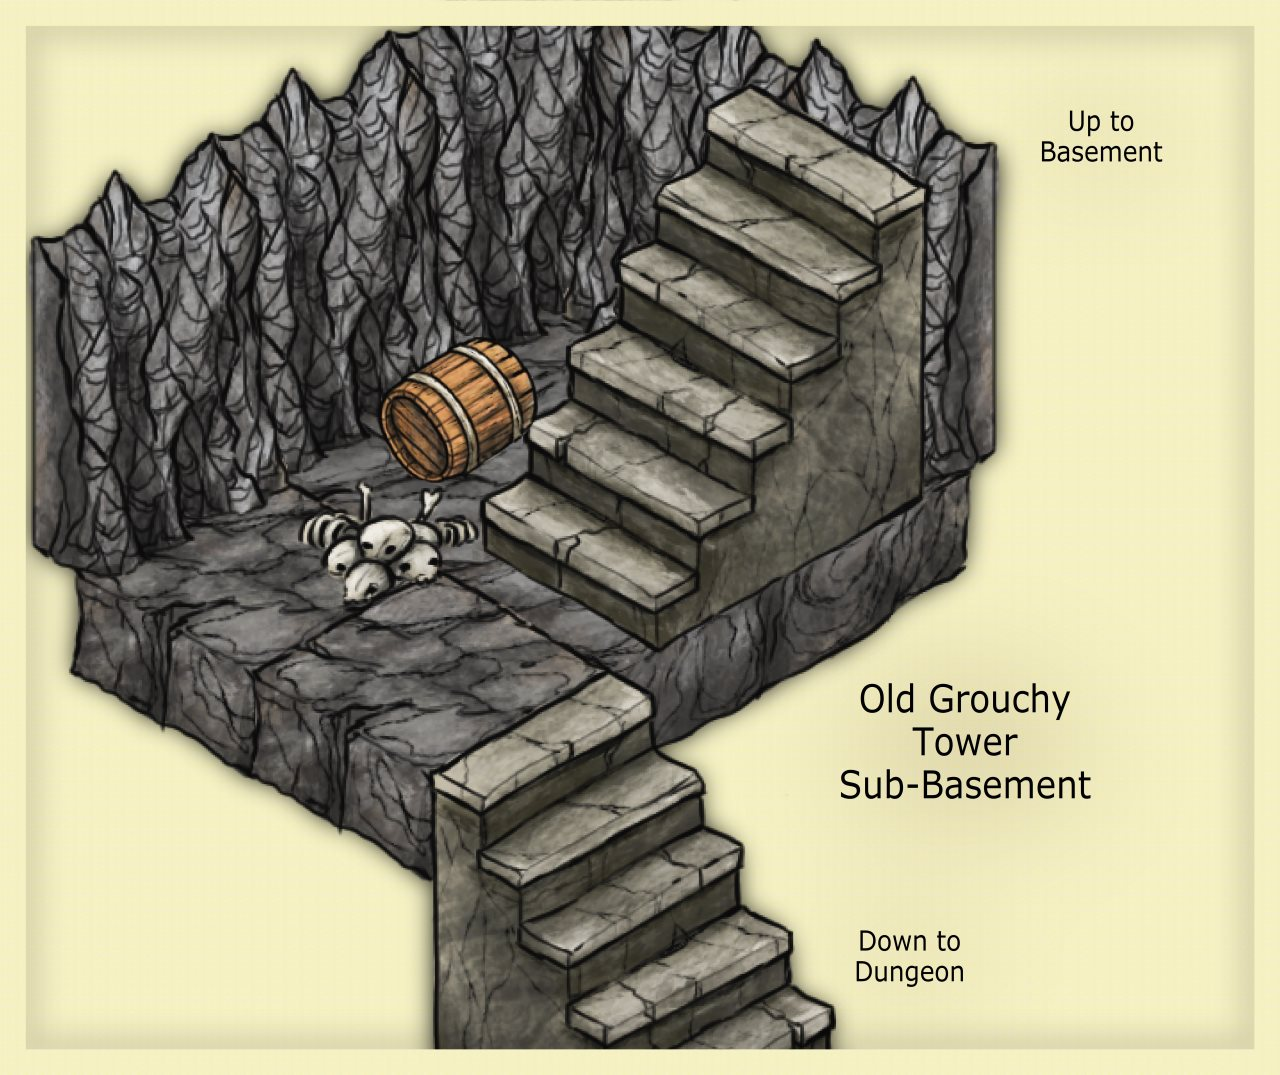 Nibirum Map: old grouchy tower sub basement by JimP